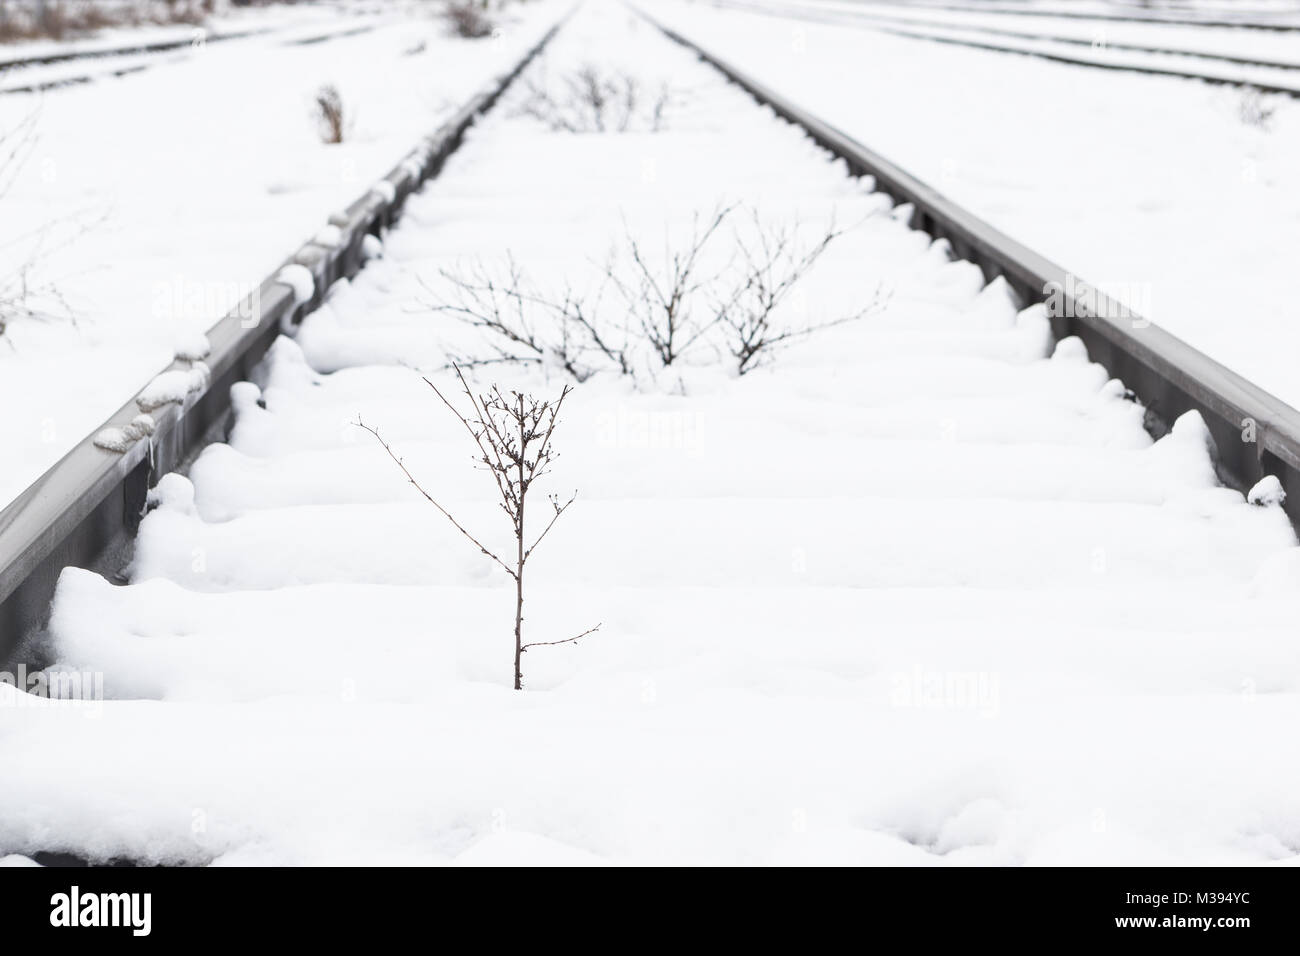 Train rails, track covered with snow during winter. - Stock Image